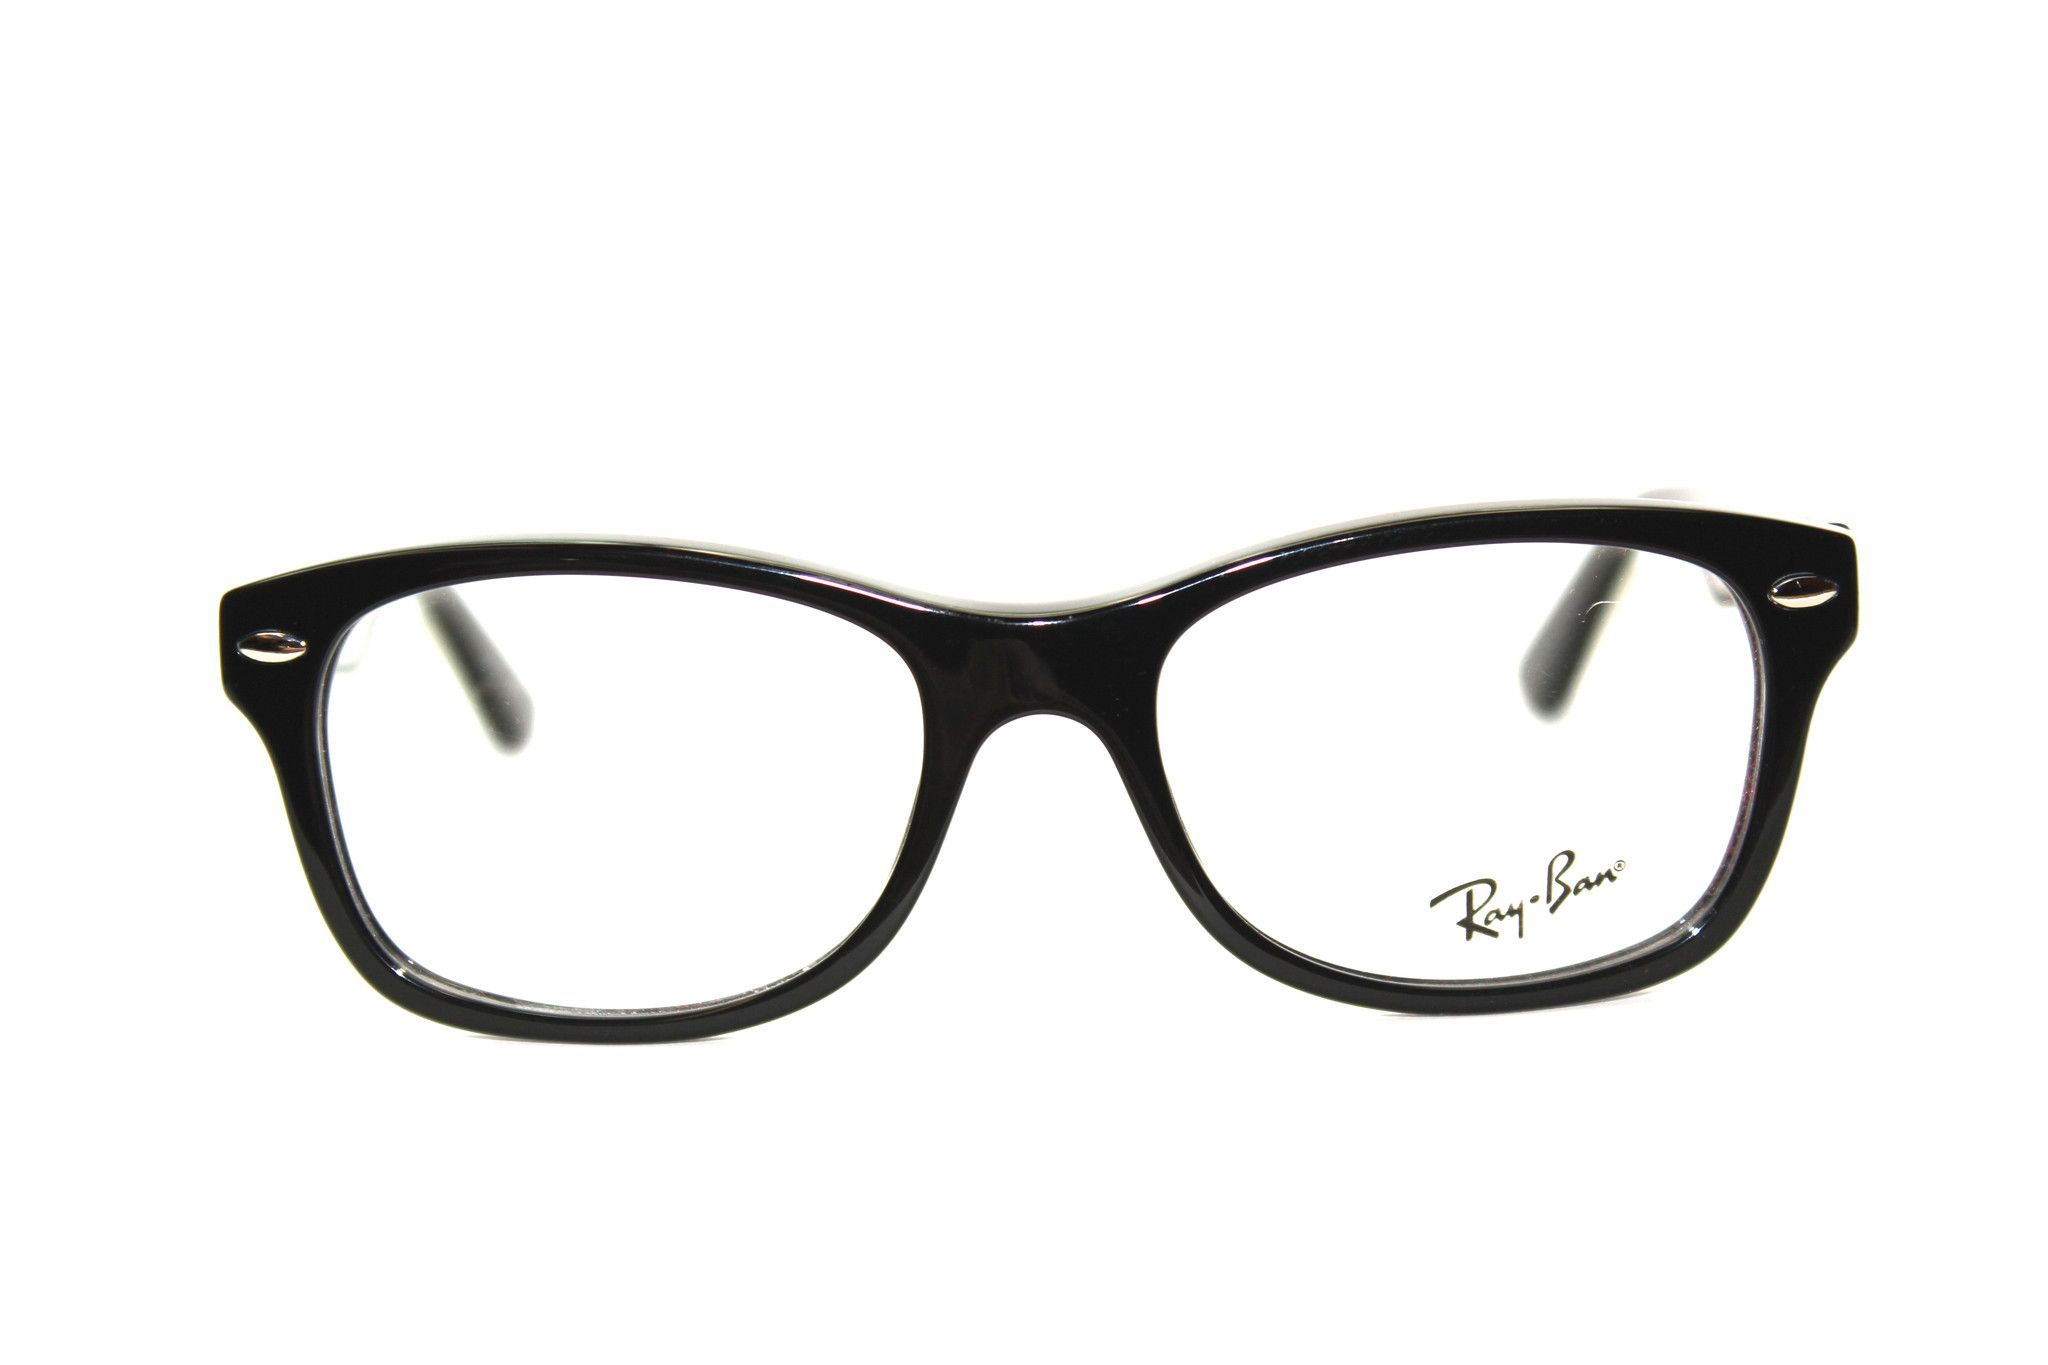 ce8dbfa68f Ray-Ban Junior RY1528 are a charming kid-sized version of the classic  Wayfarer glasses. - Great for Boys or Girls. - Full rim frame made from  lustrous